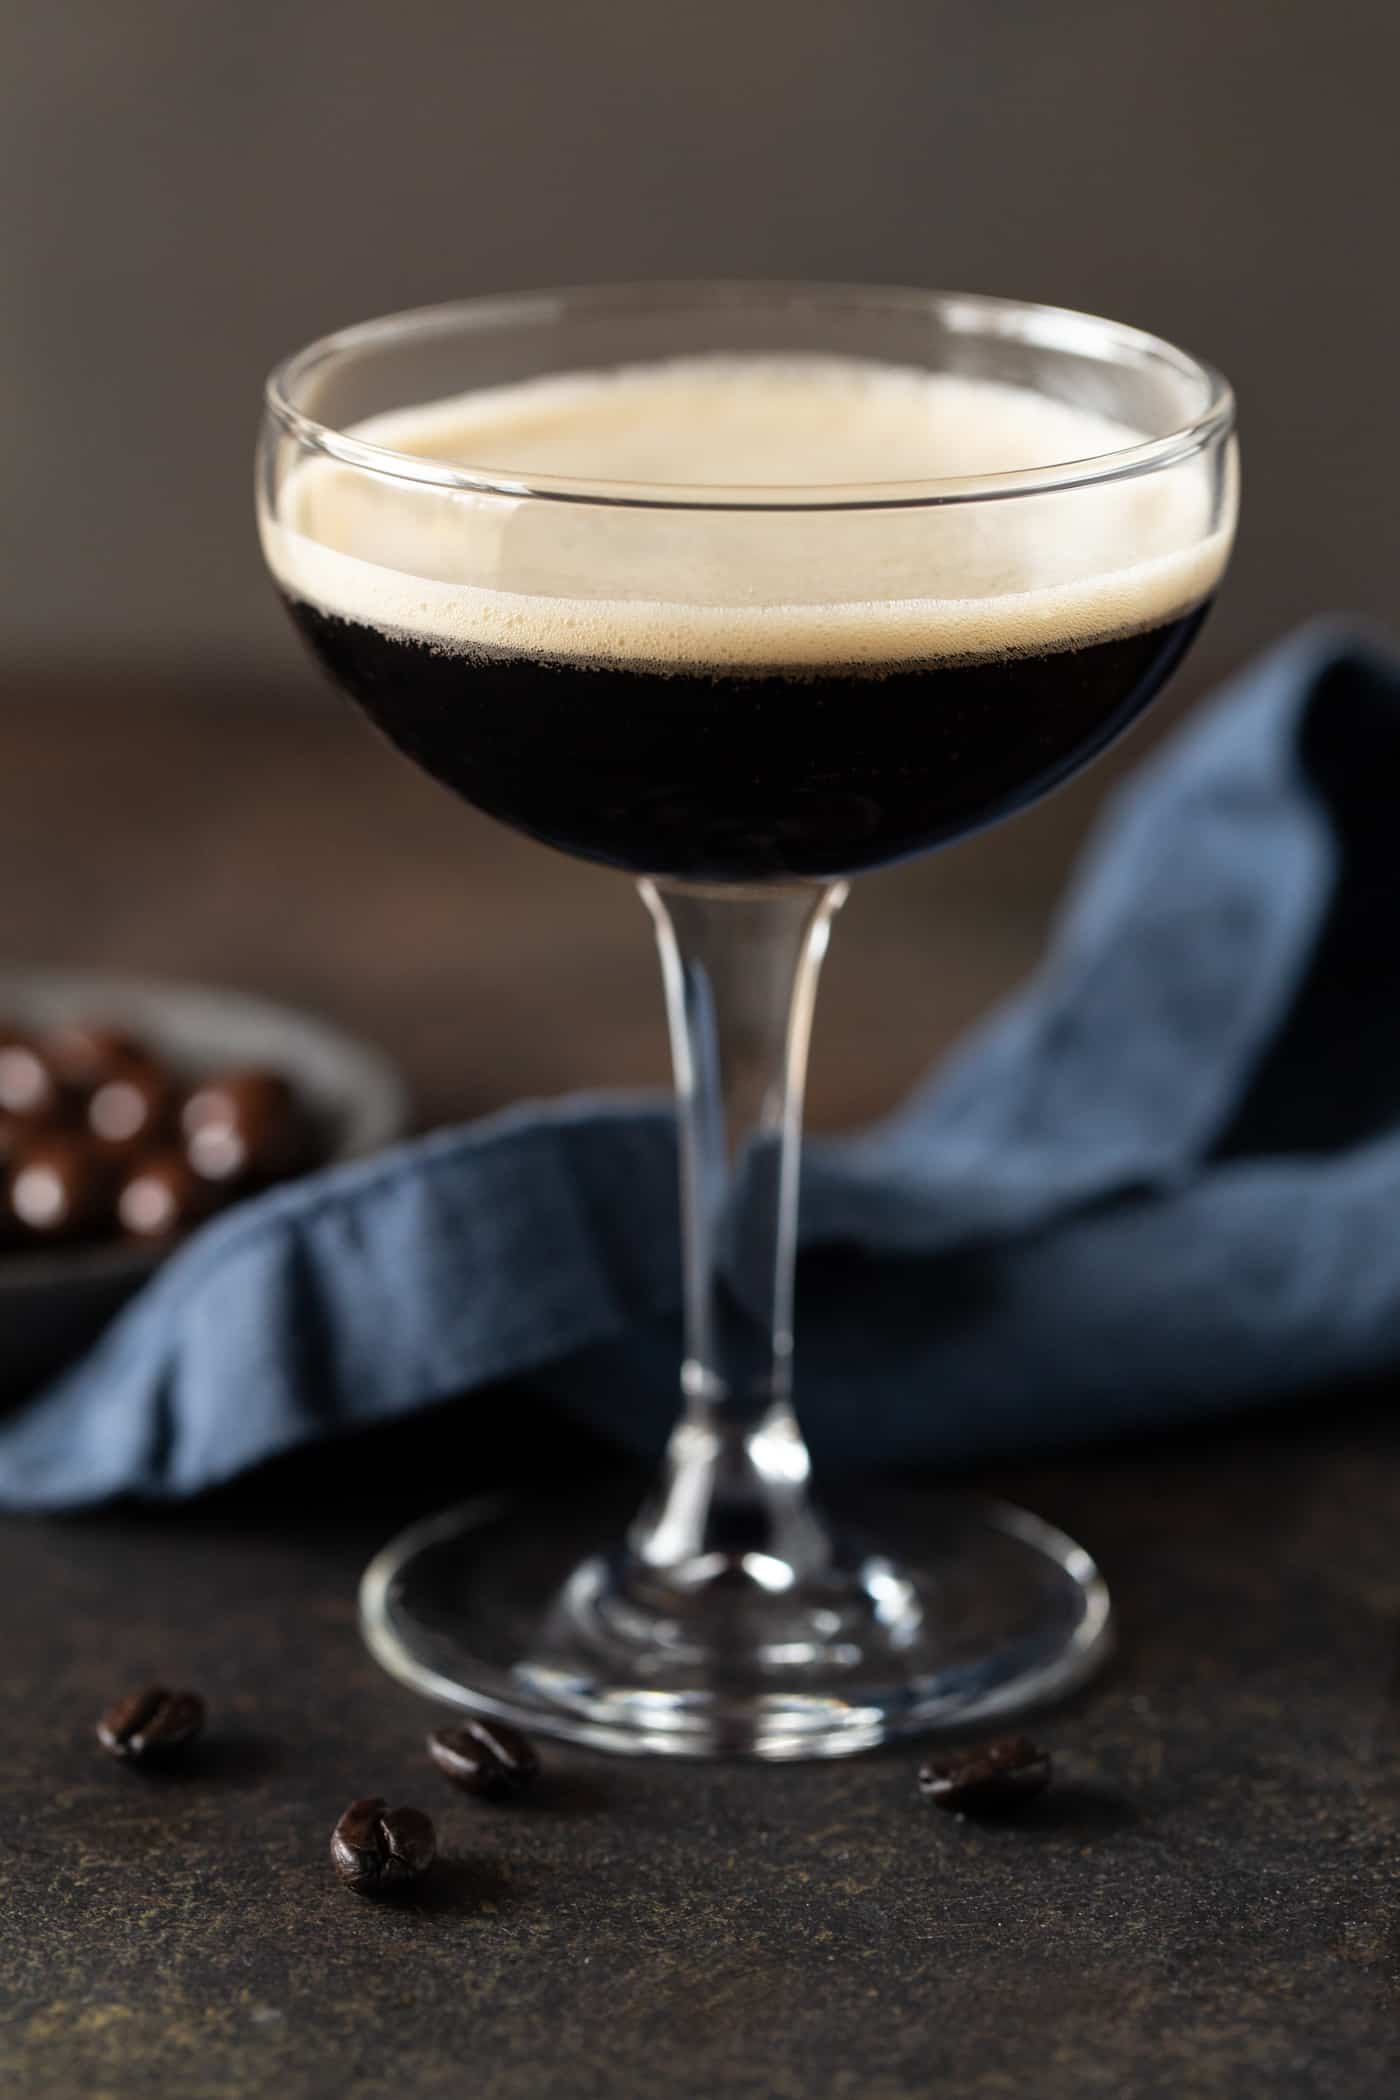 Single Espresso martini with chocolate covered espresso beans and coffee beans for garnish on a dark background.